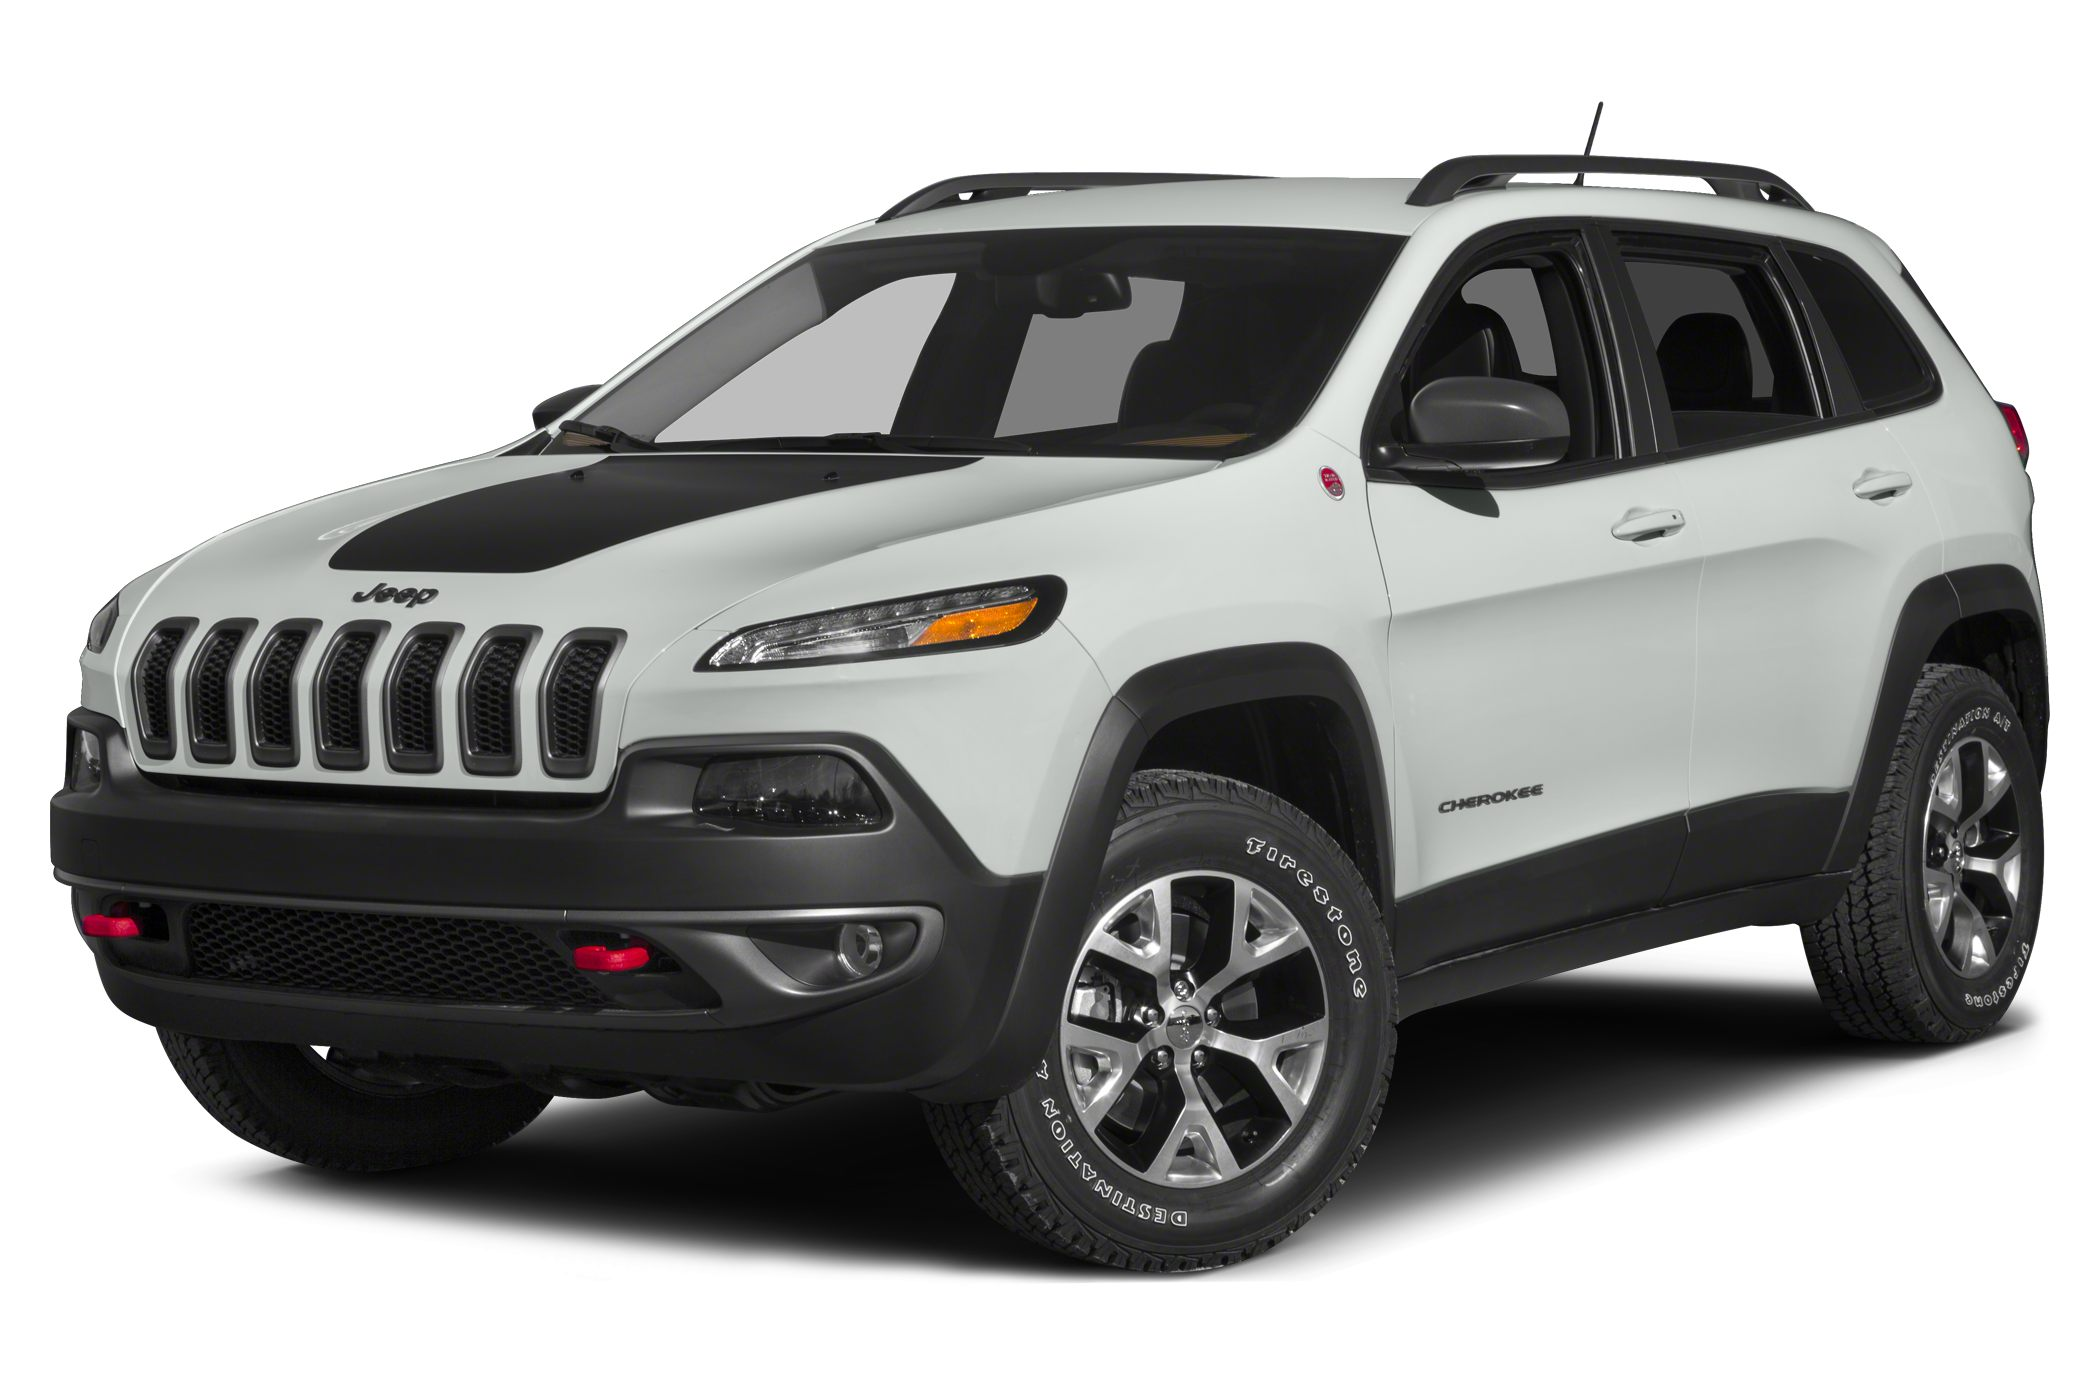 2015 Jeep Cherokee Trailhawk SUV for sale in Tacoma for $40,649 with 10 miles